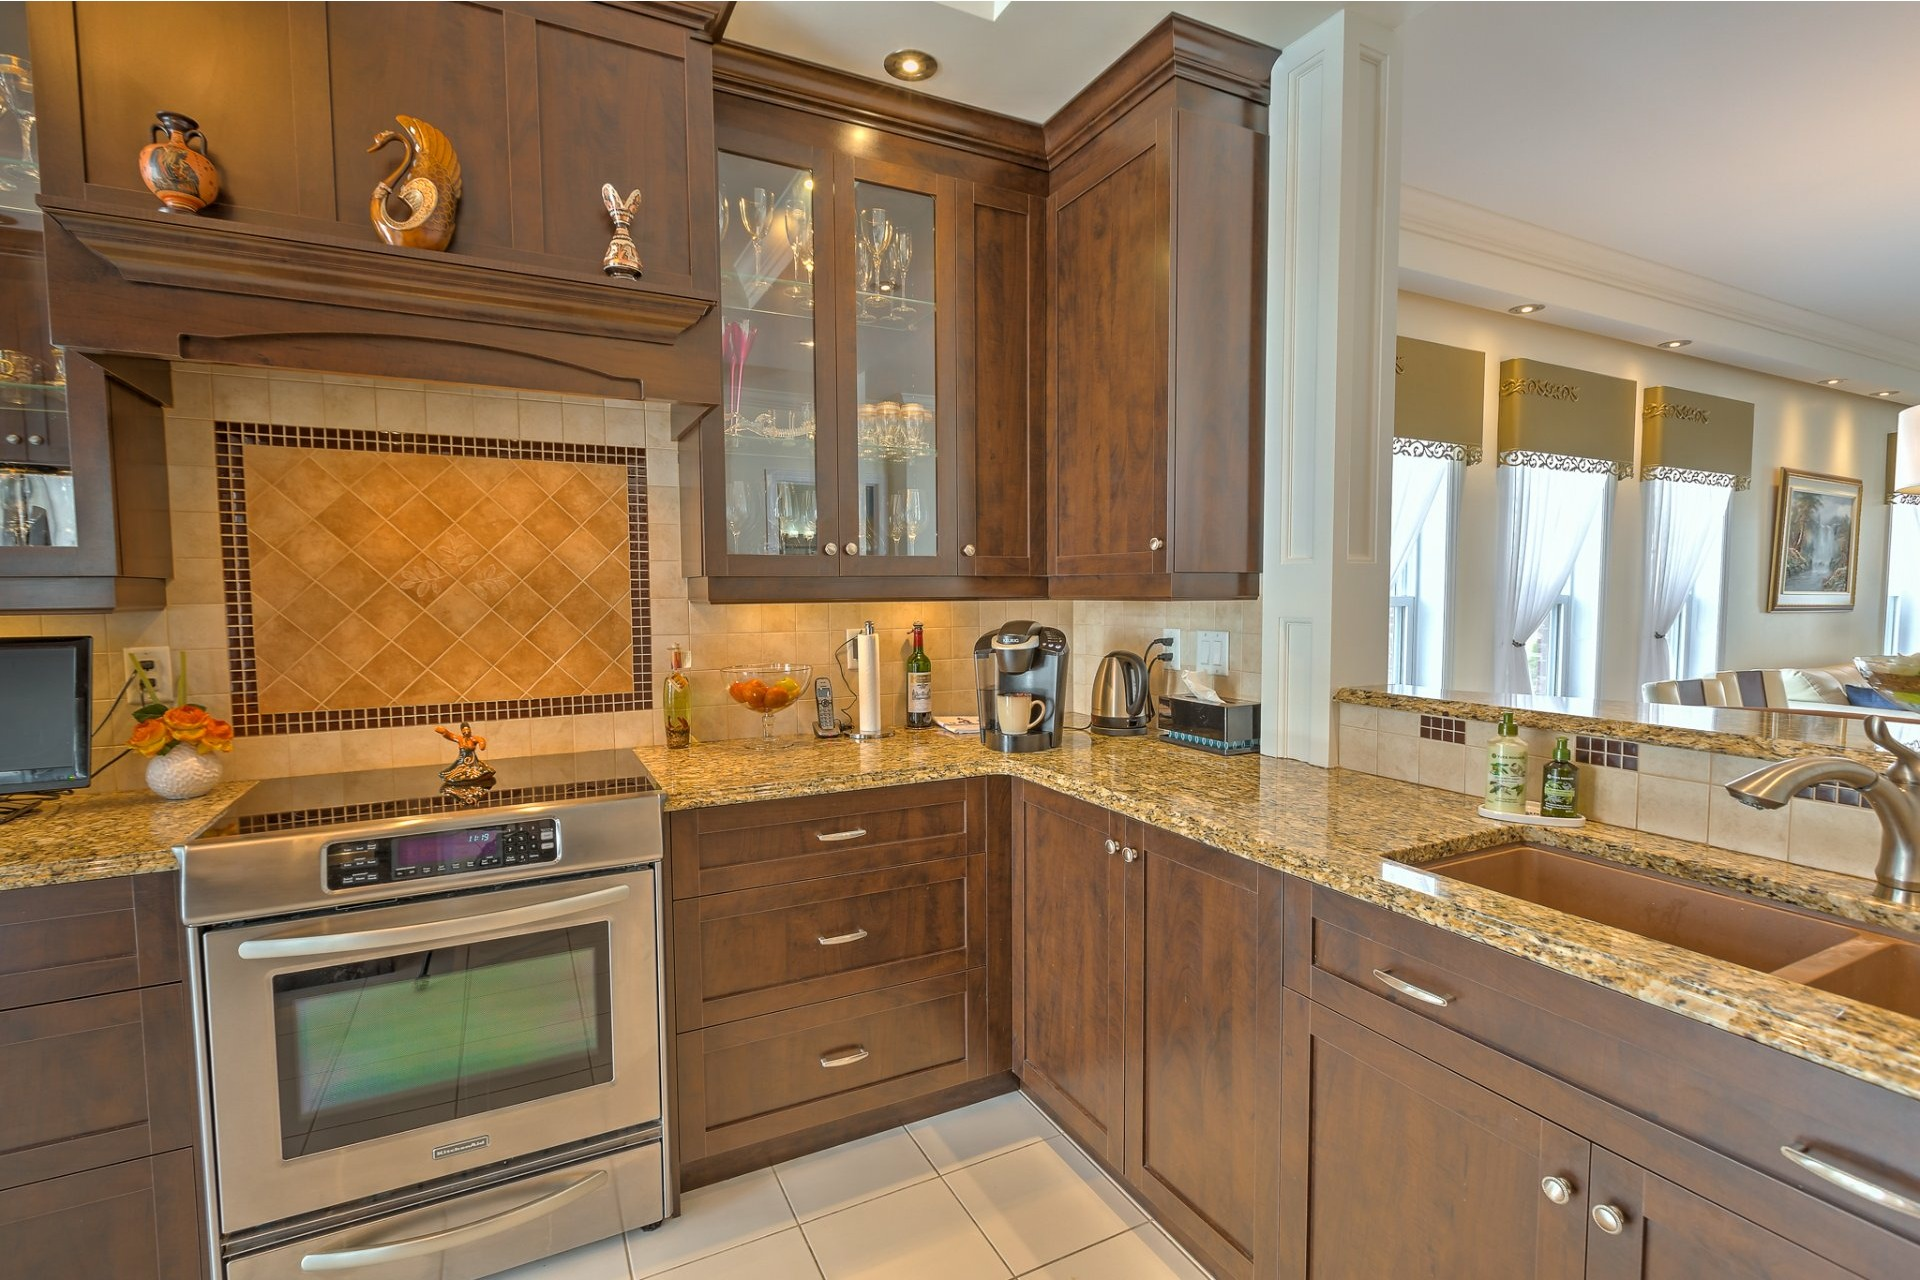 image 11 - Apartment For sale Brossard - 7 rooms